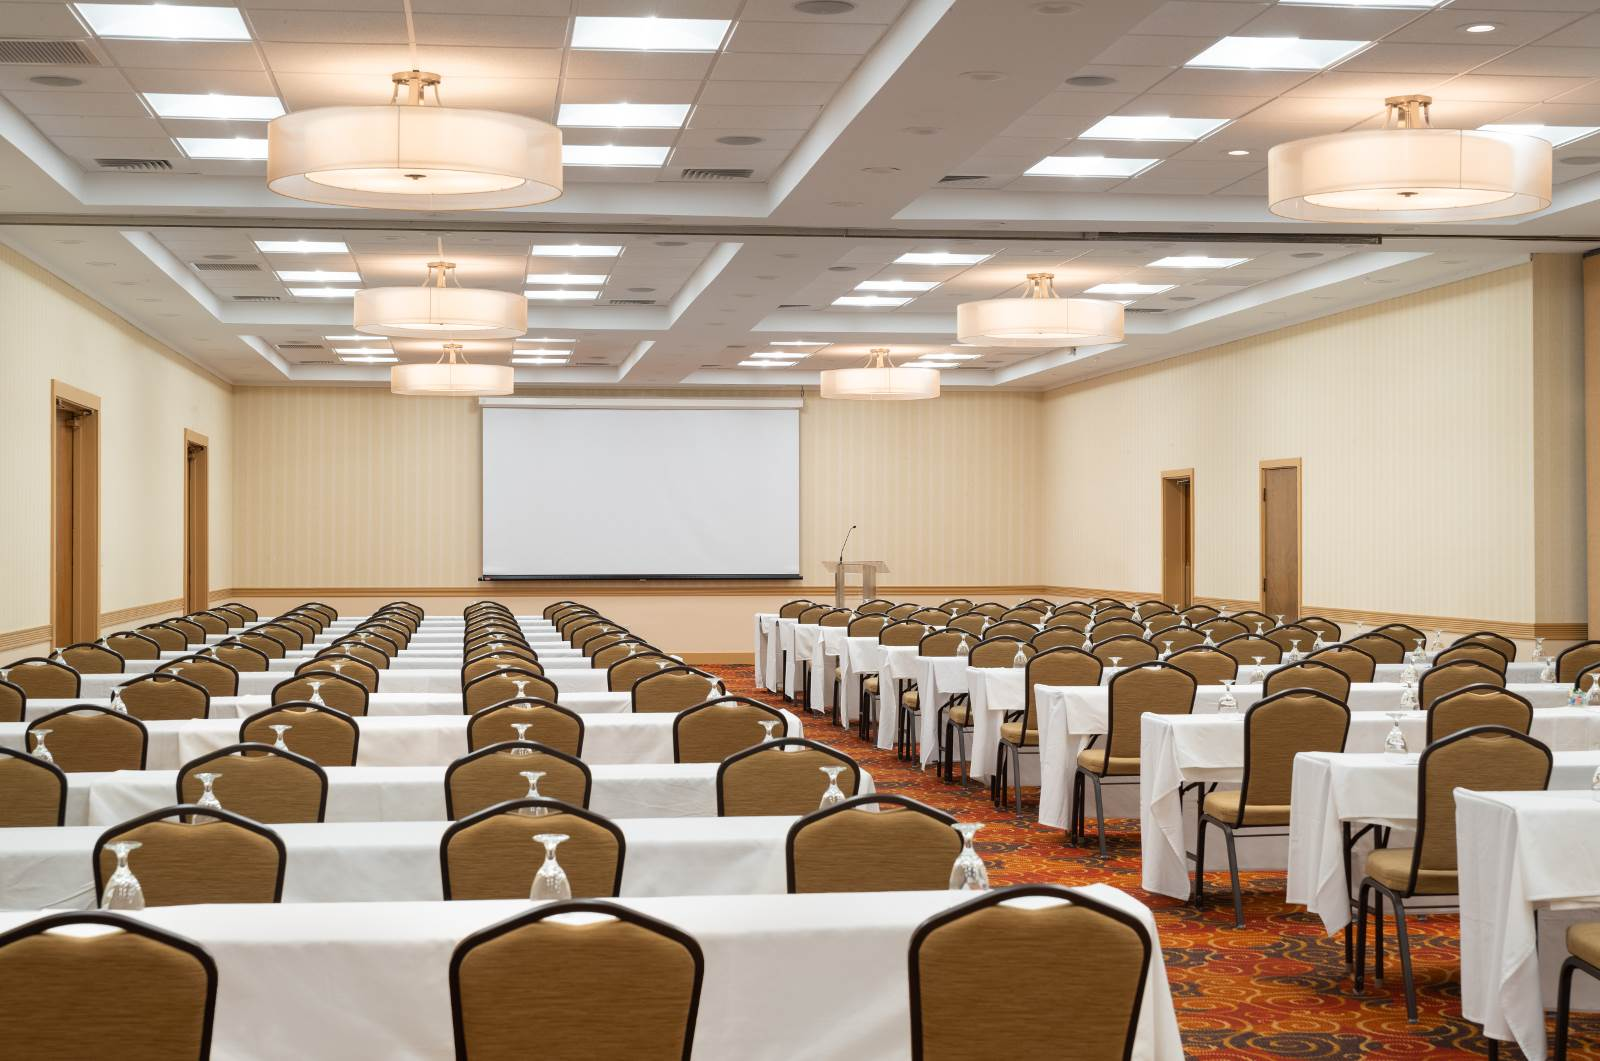 Group And Meeting Accommodations In State College, PA